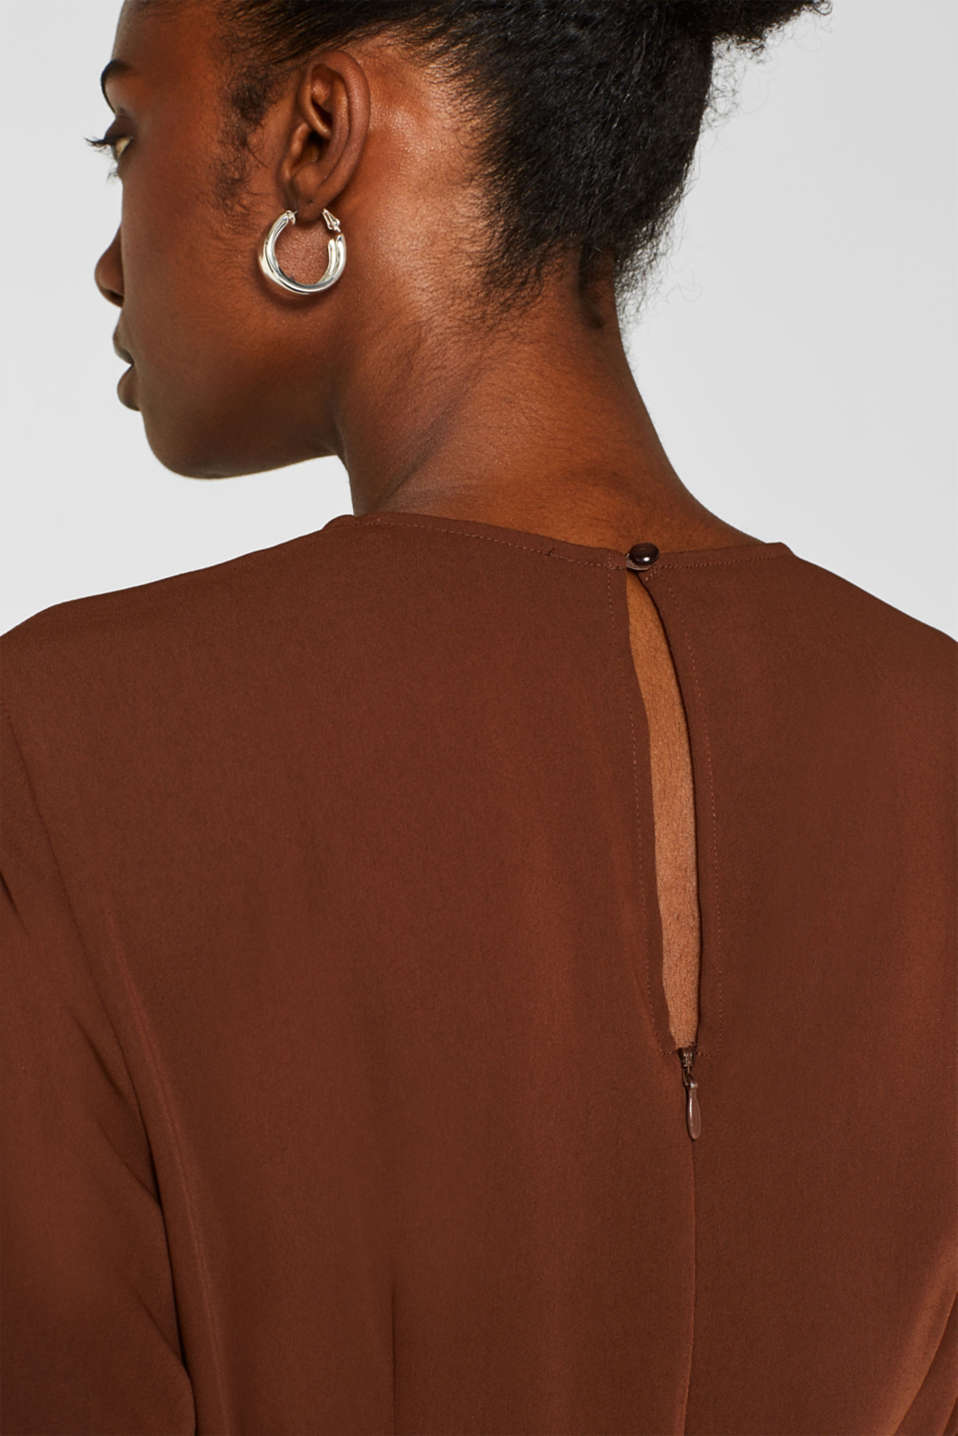 Midi dress with a wrap-over effect, DARK BROWN, detail image number 6